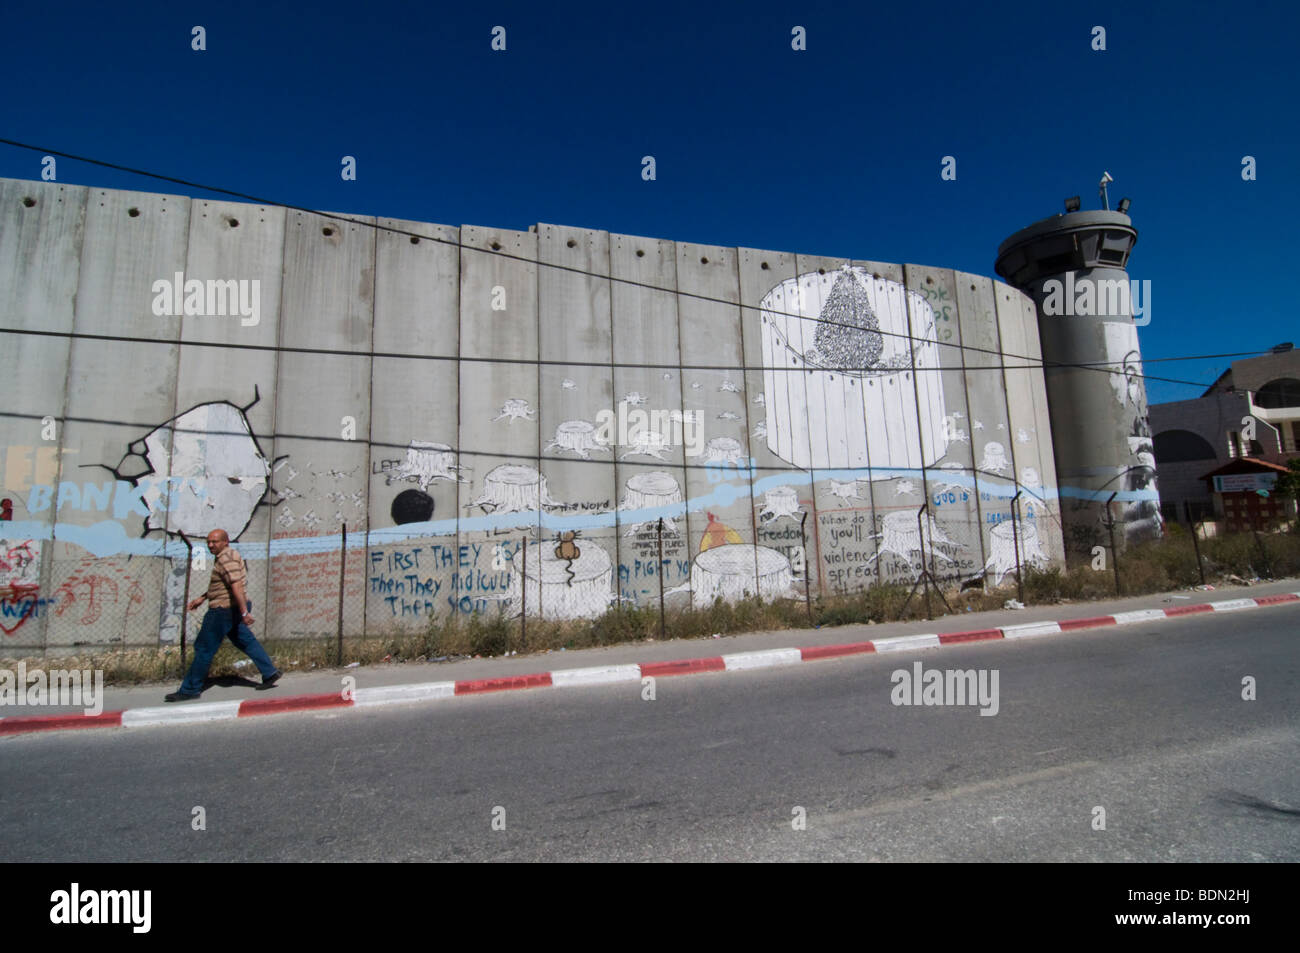 The Israeli separation wall juts into the Palestinian West Bank town of Bethlehem. - Stock Image